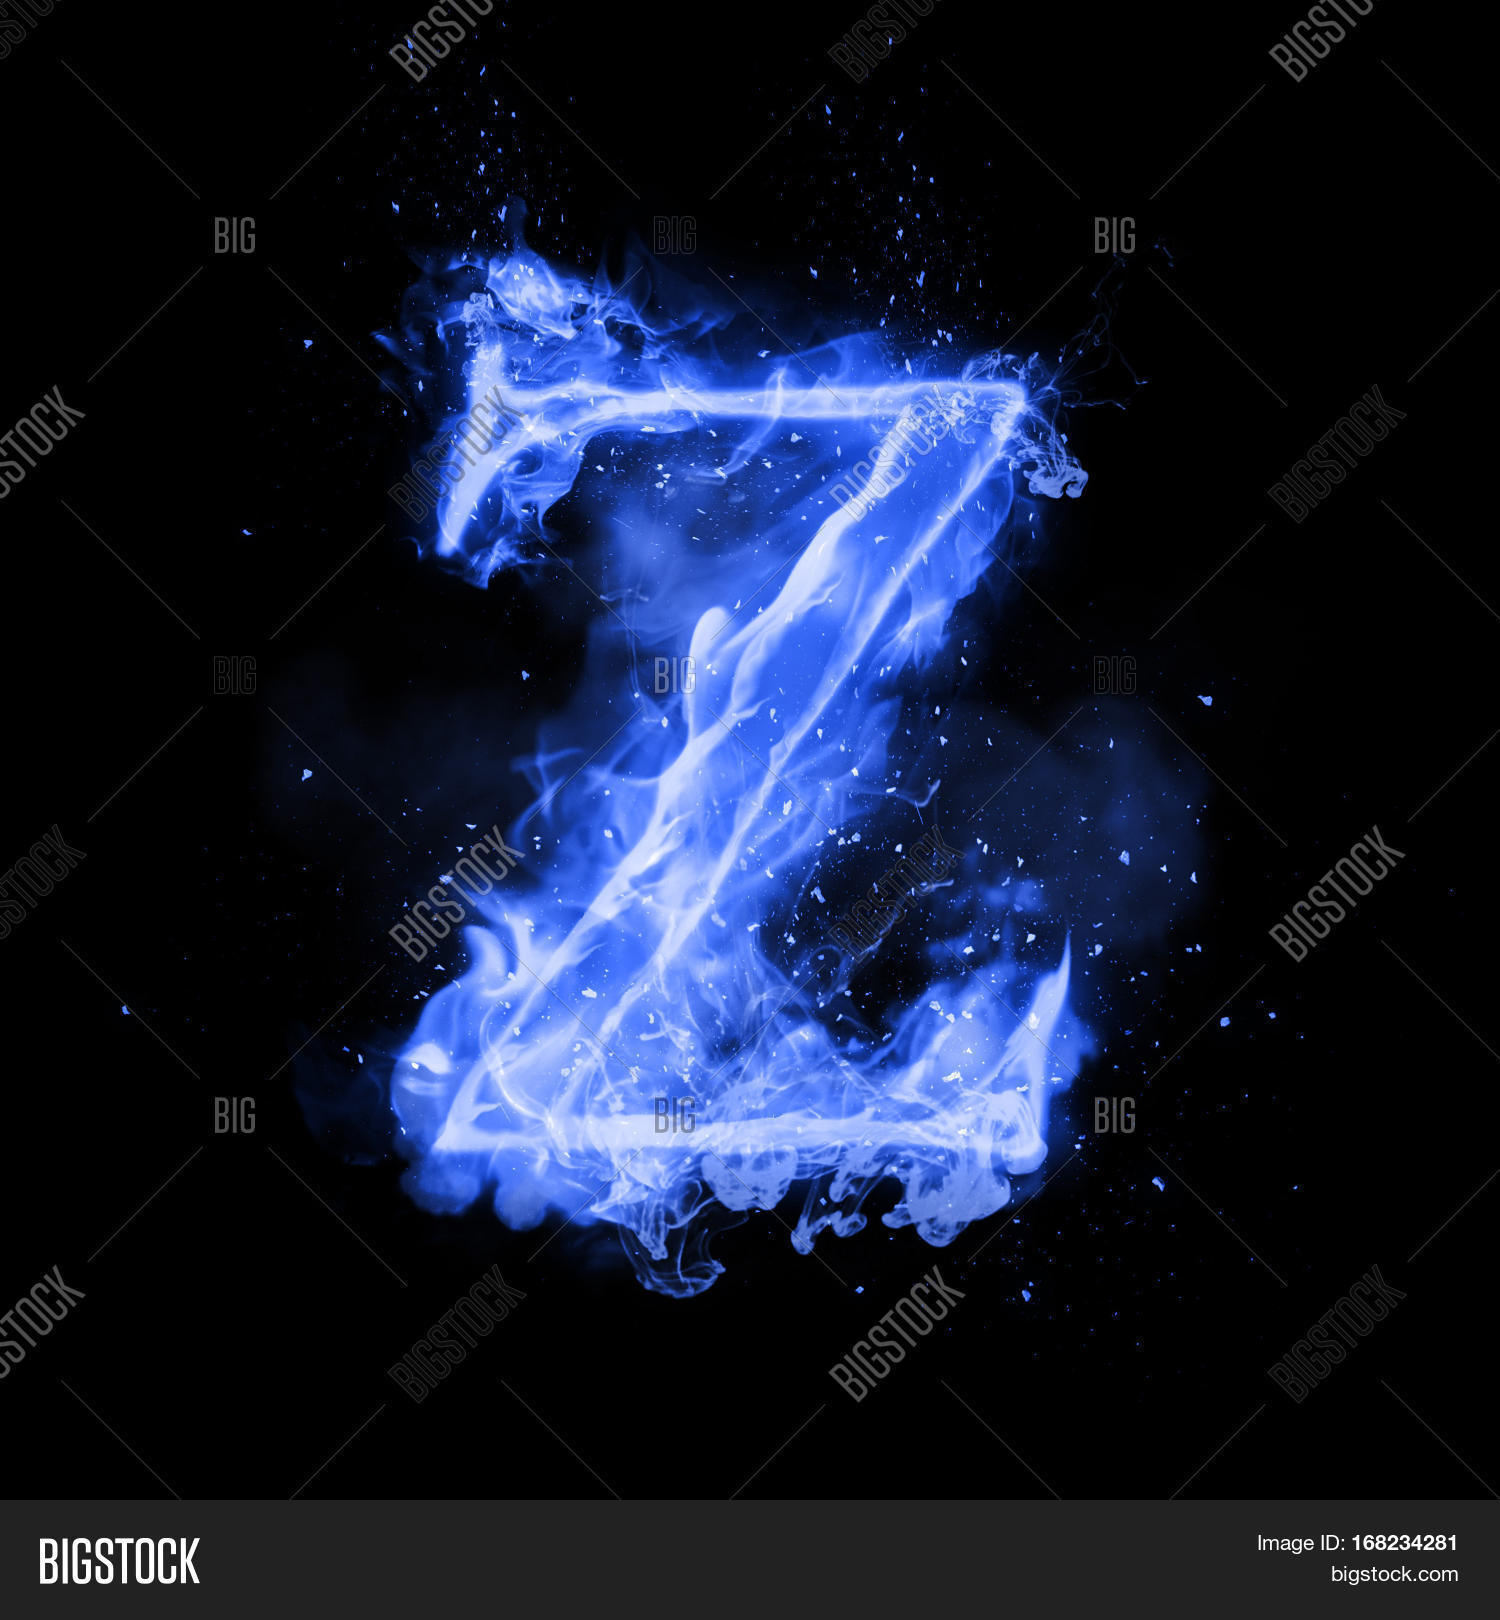 Fire Letter Z Burning Image & Photo (Free Trial)   Bigstock